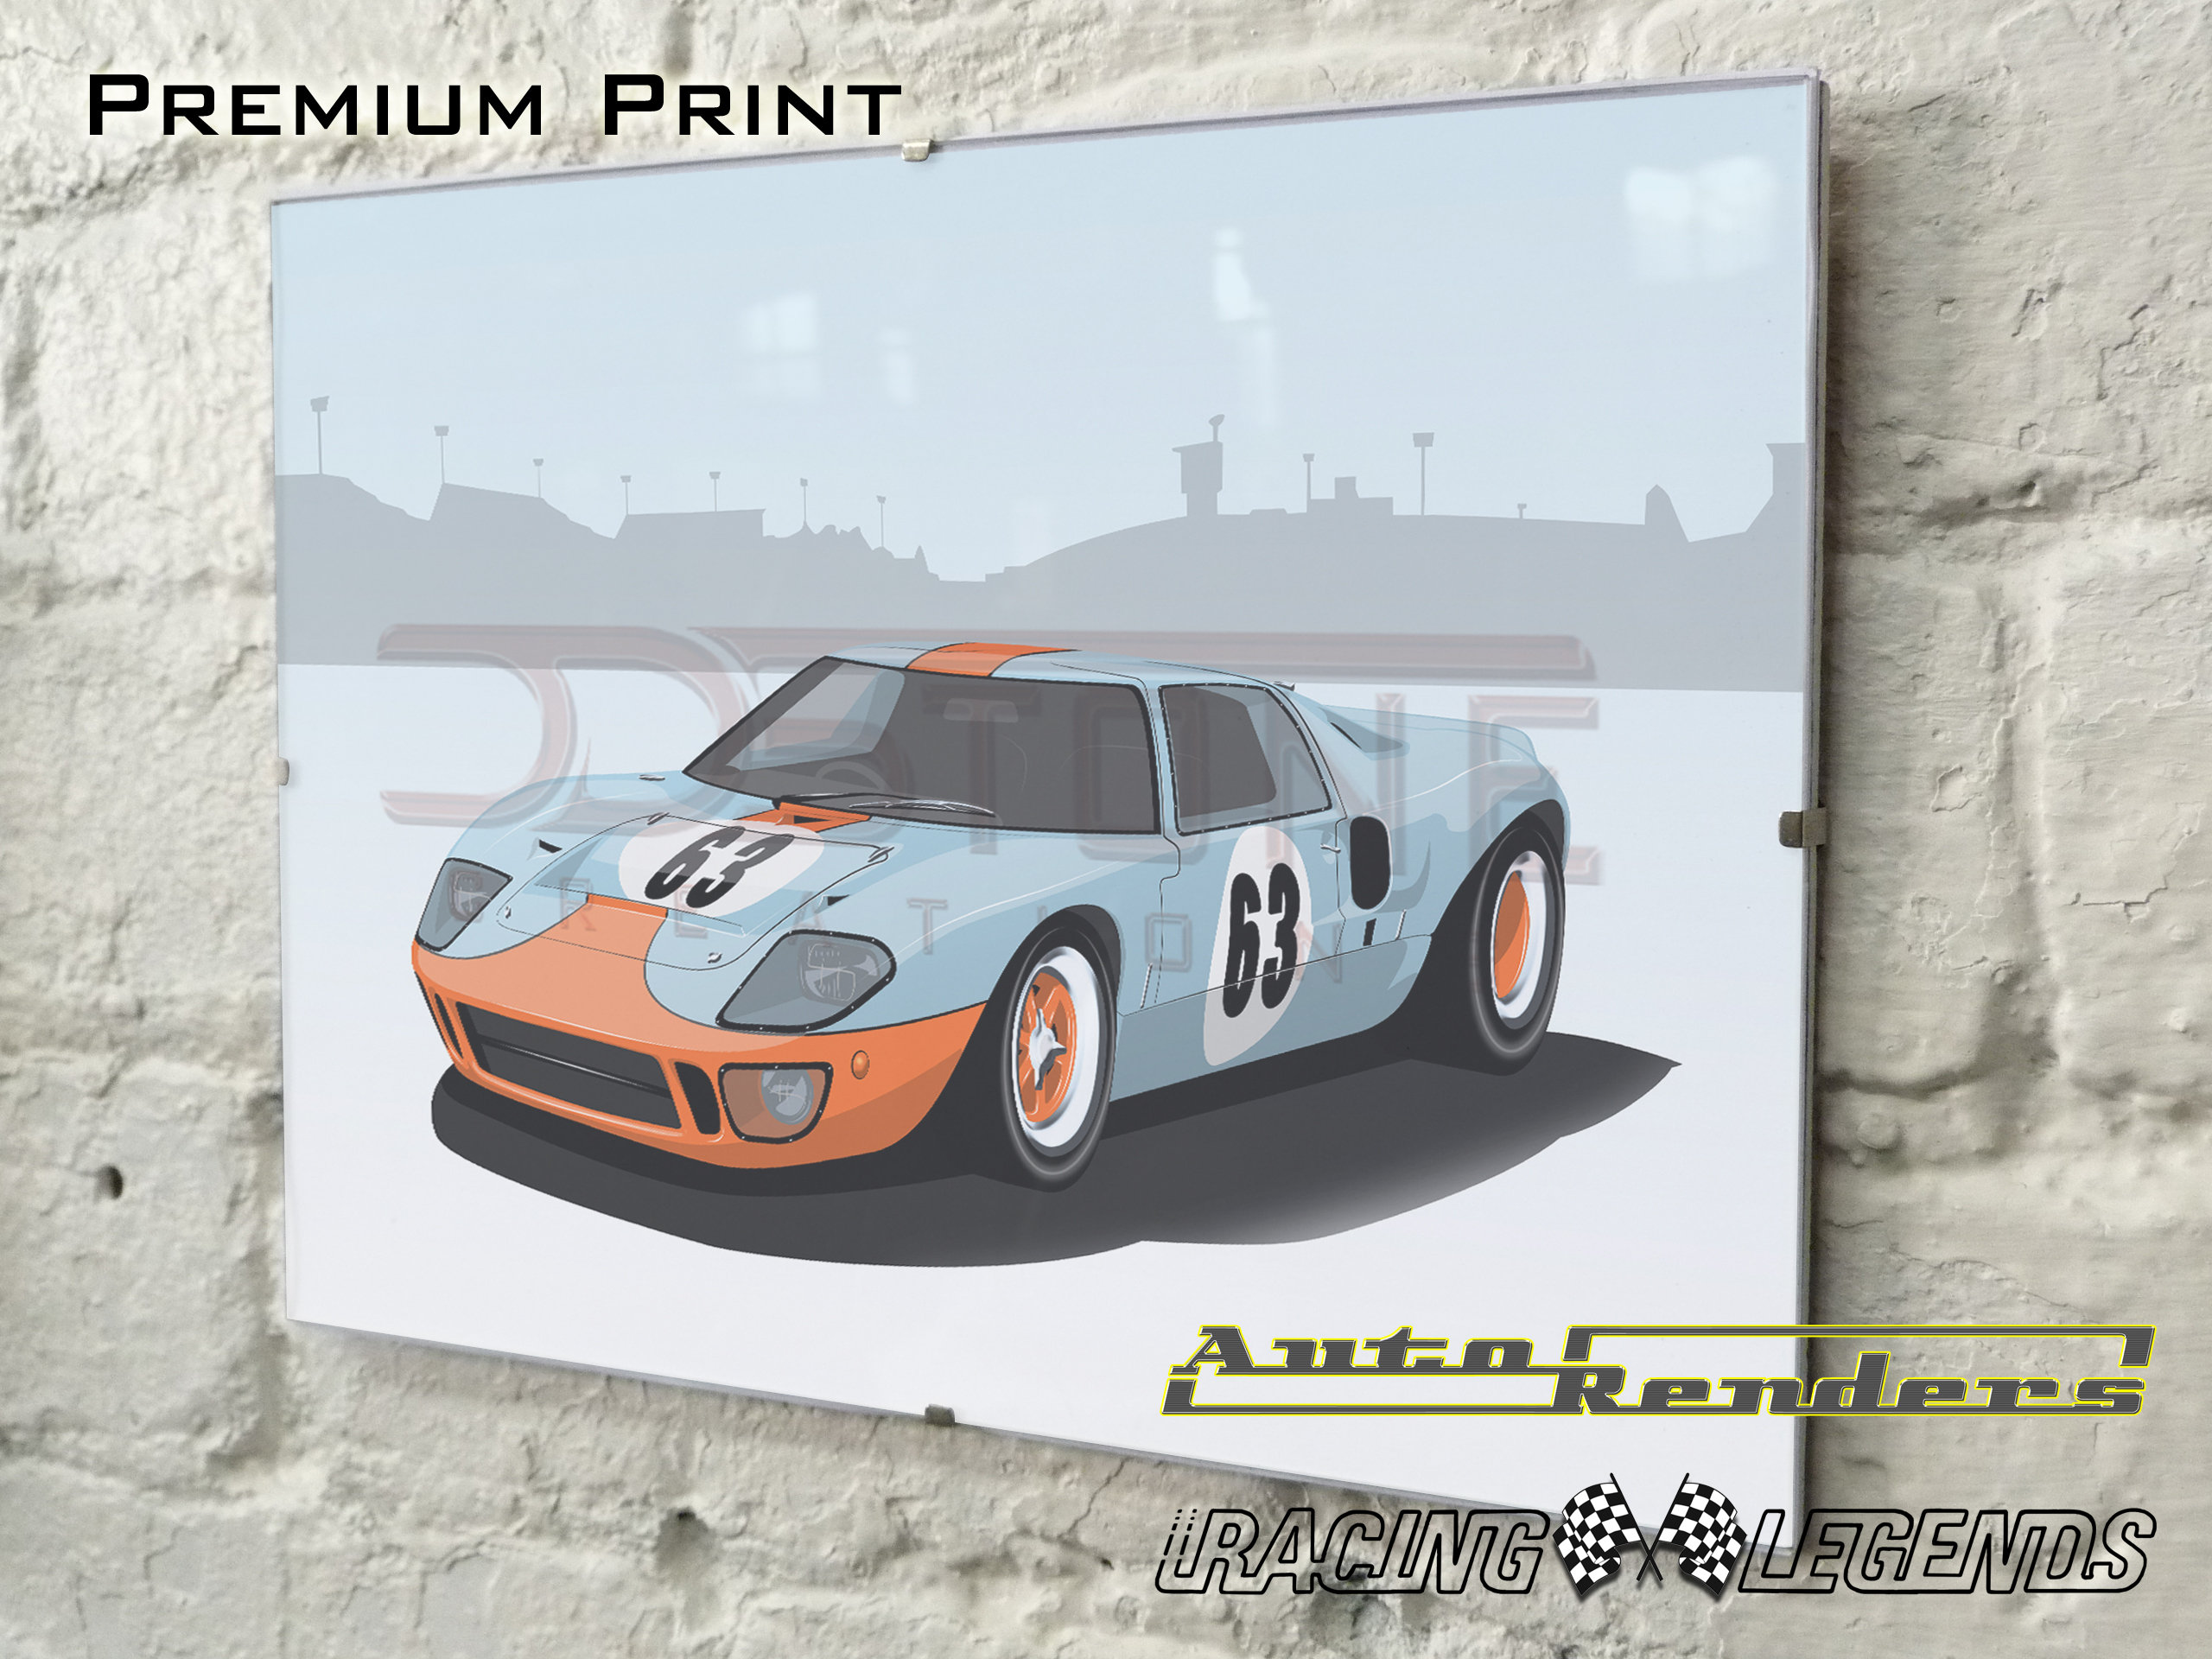 Gulf Ford GT40 Mk1 on Premium Poster - 12x8 to 45x30